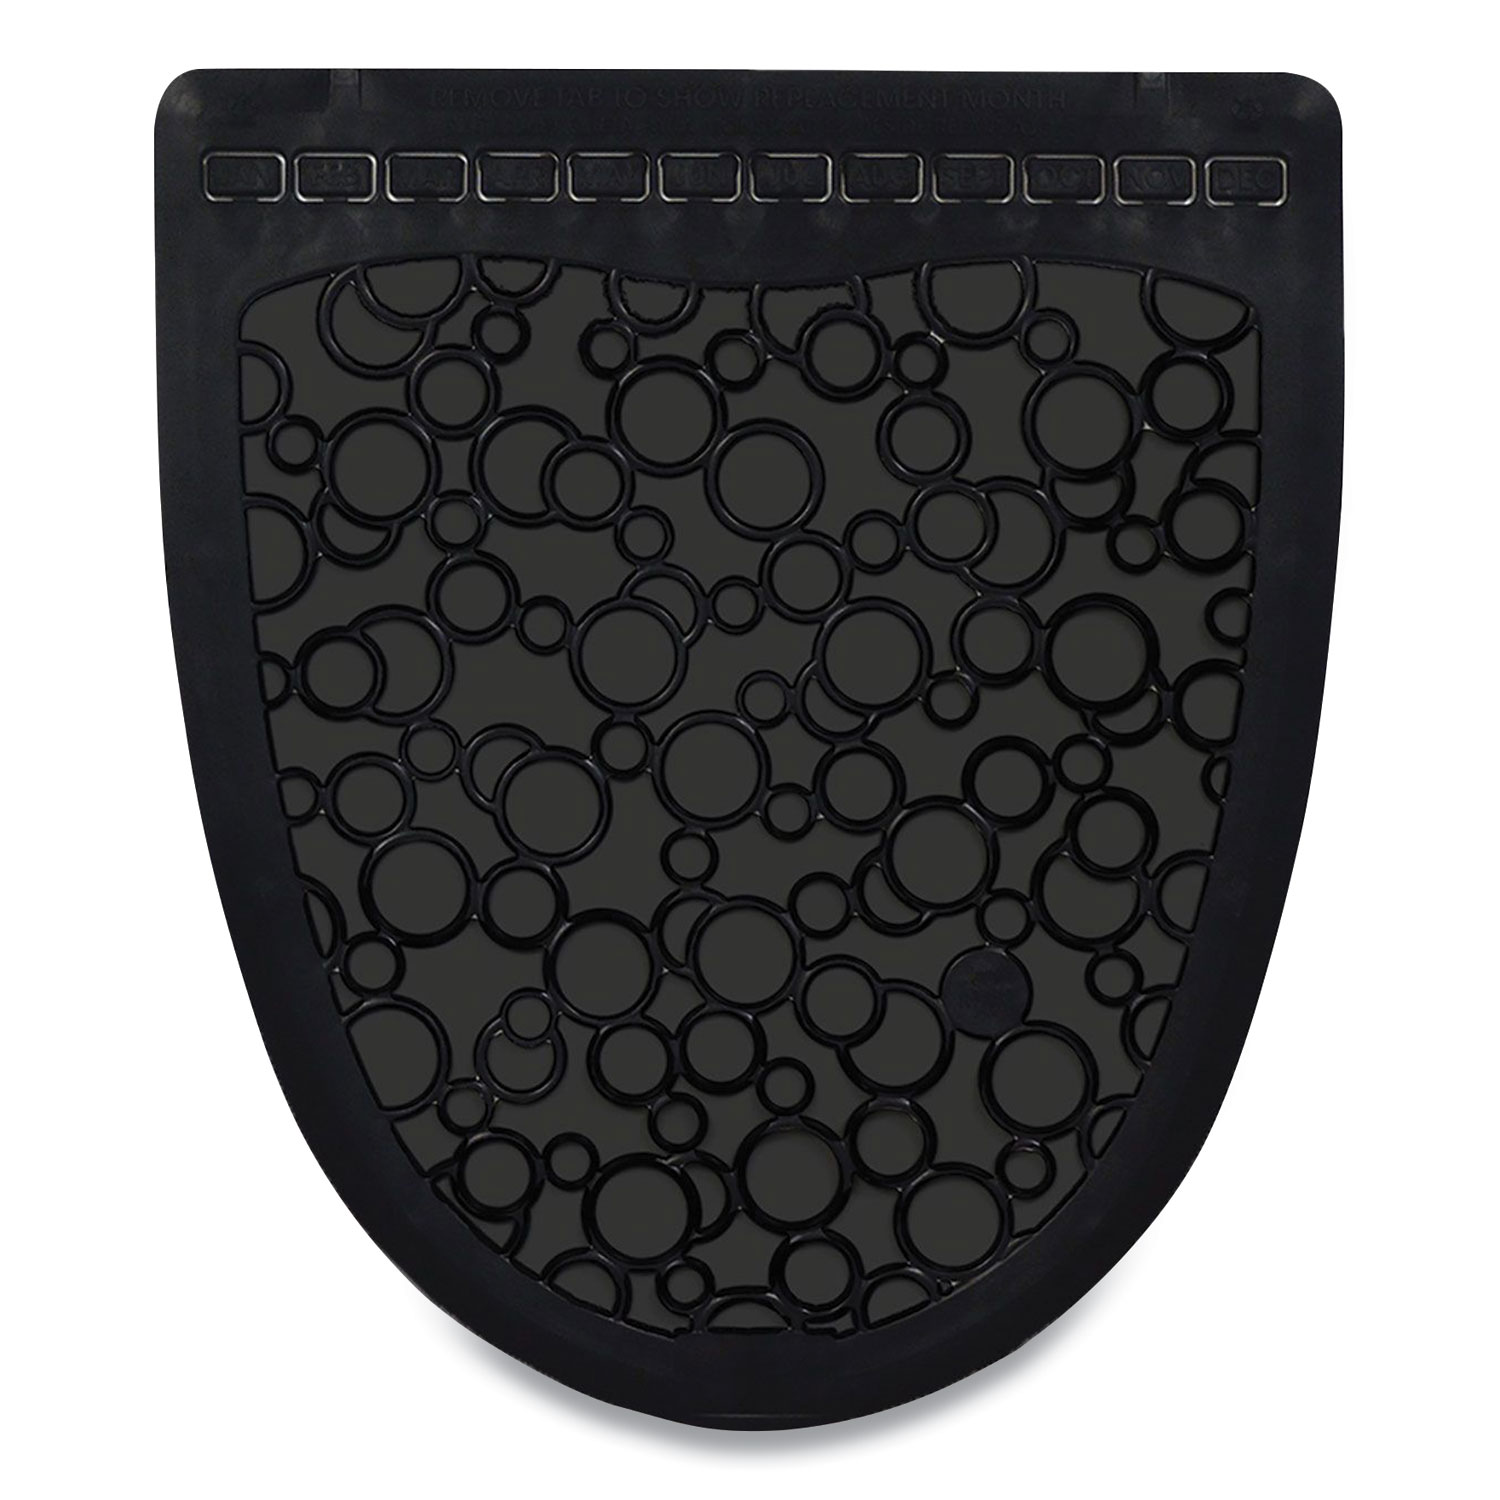 Fresh Products P-Shield Urinal Safety Mat, Wedge, 22.63 x 22.25, Black, 6/Carton